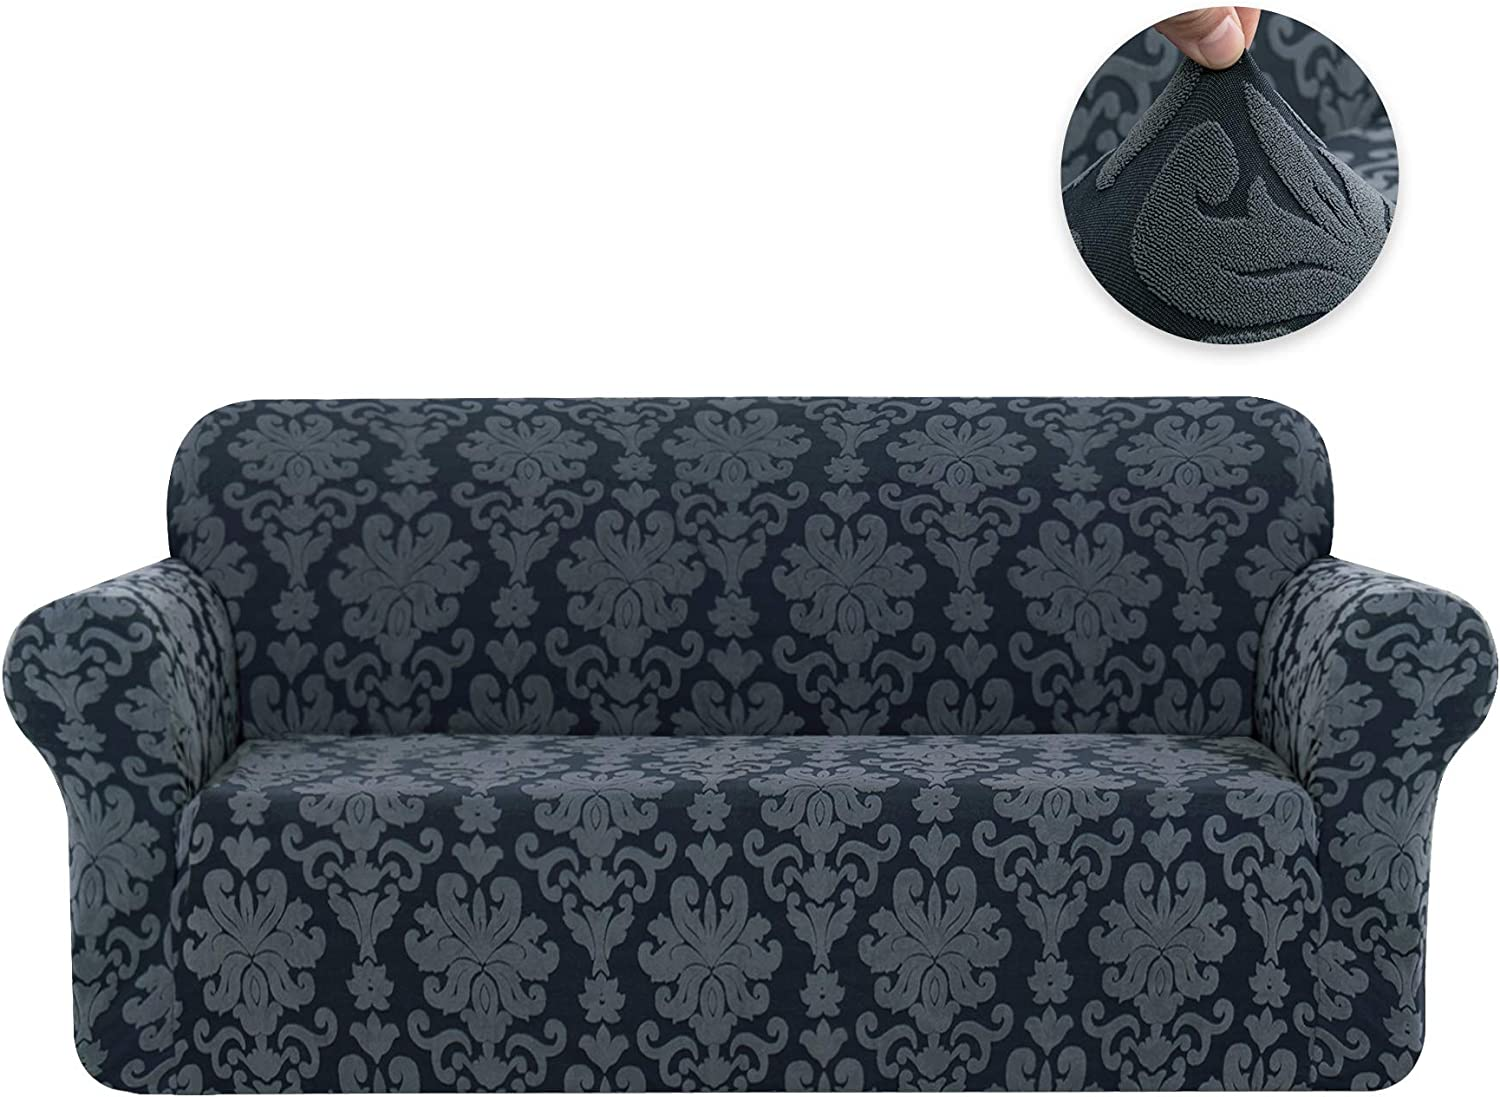 Chocolate CHUN YI 1-Piece Stretch Jacquard Damask Elegant Collection Loveseat Slipcover Easy Fitted Couch Cover Stretchable Durable Furniture Protector